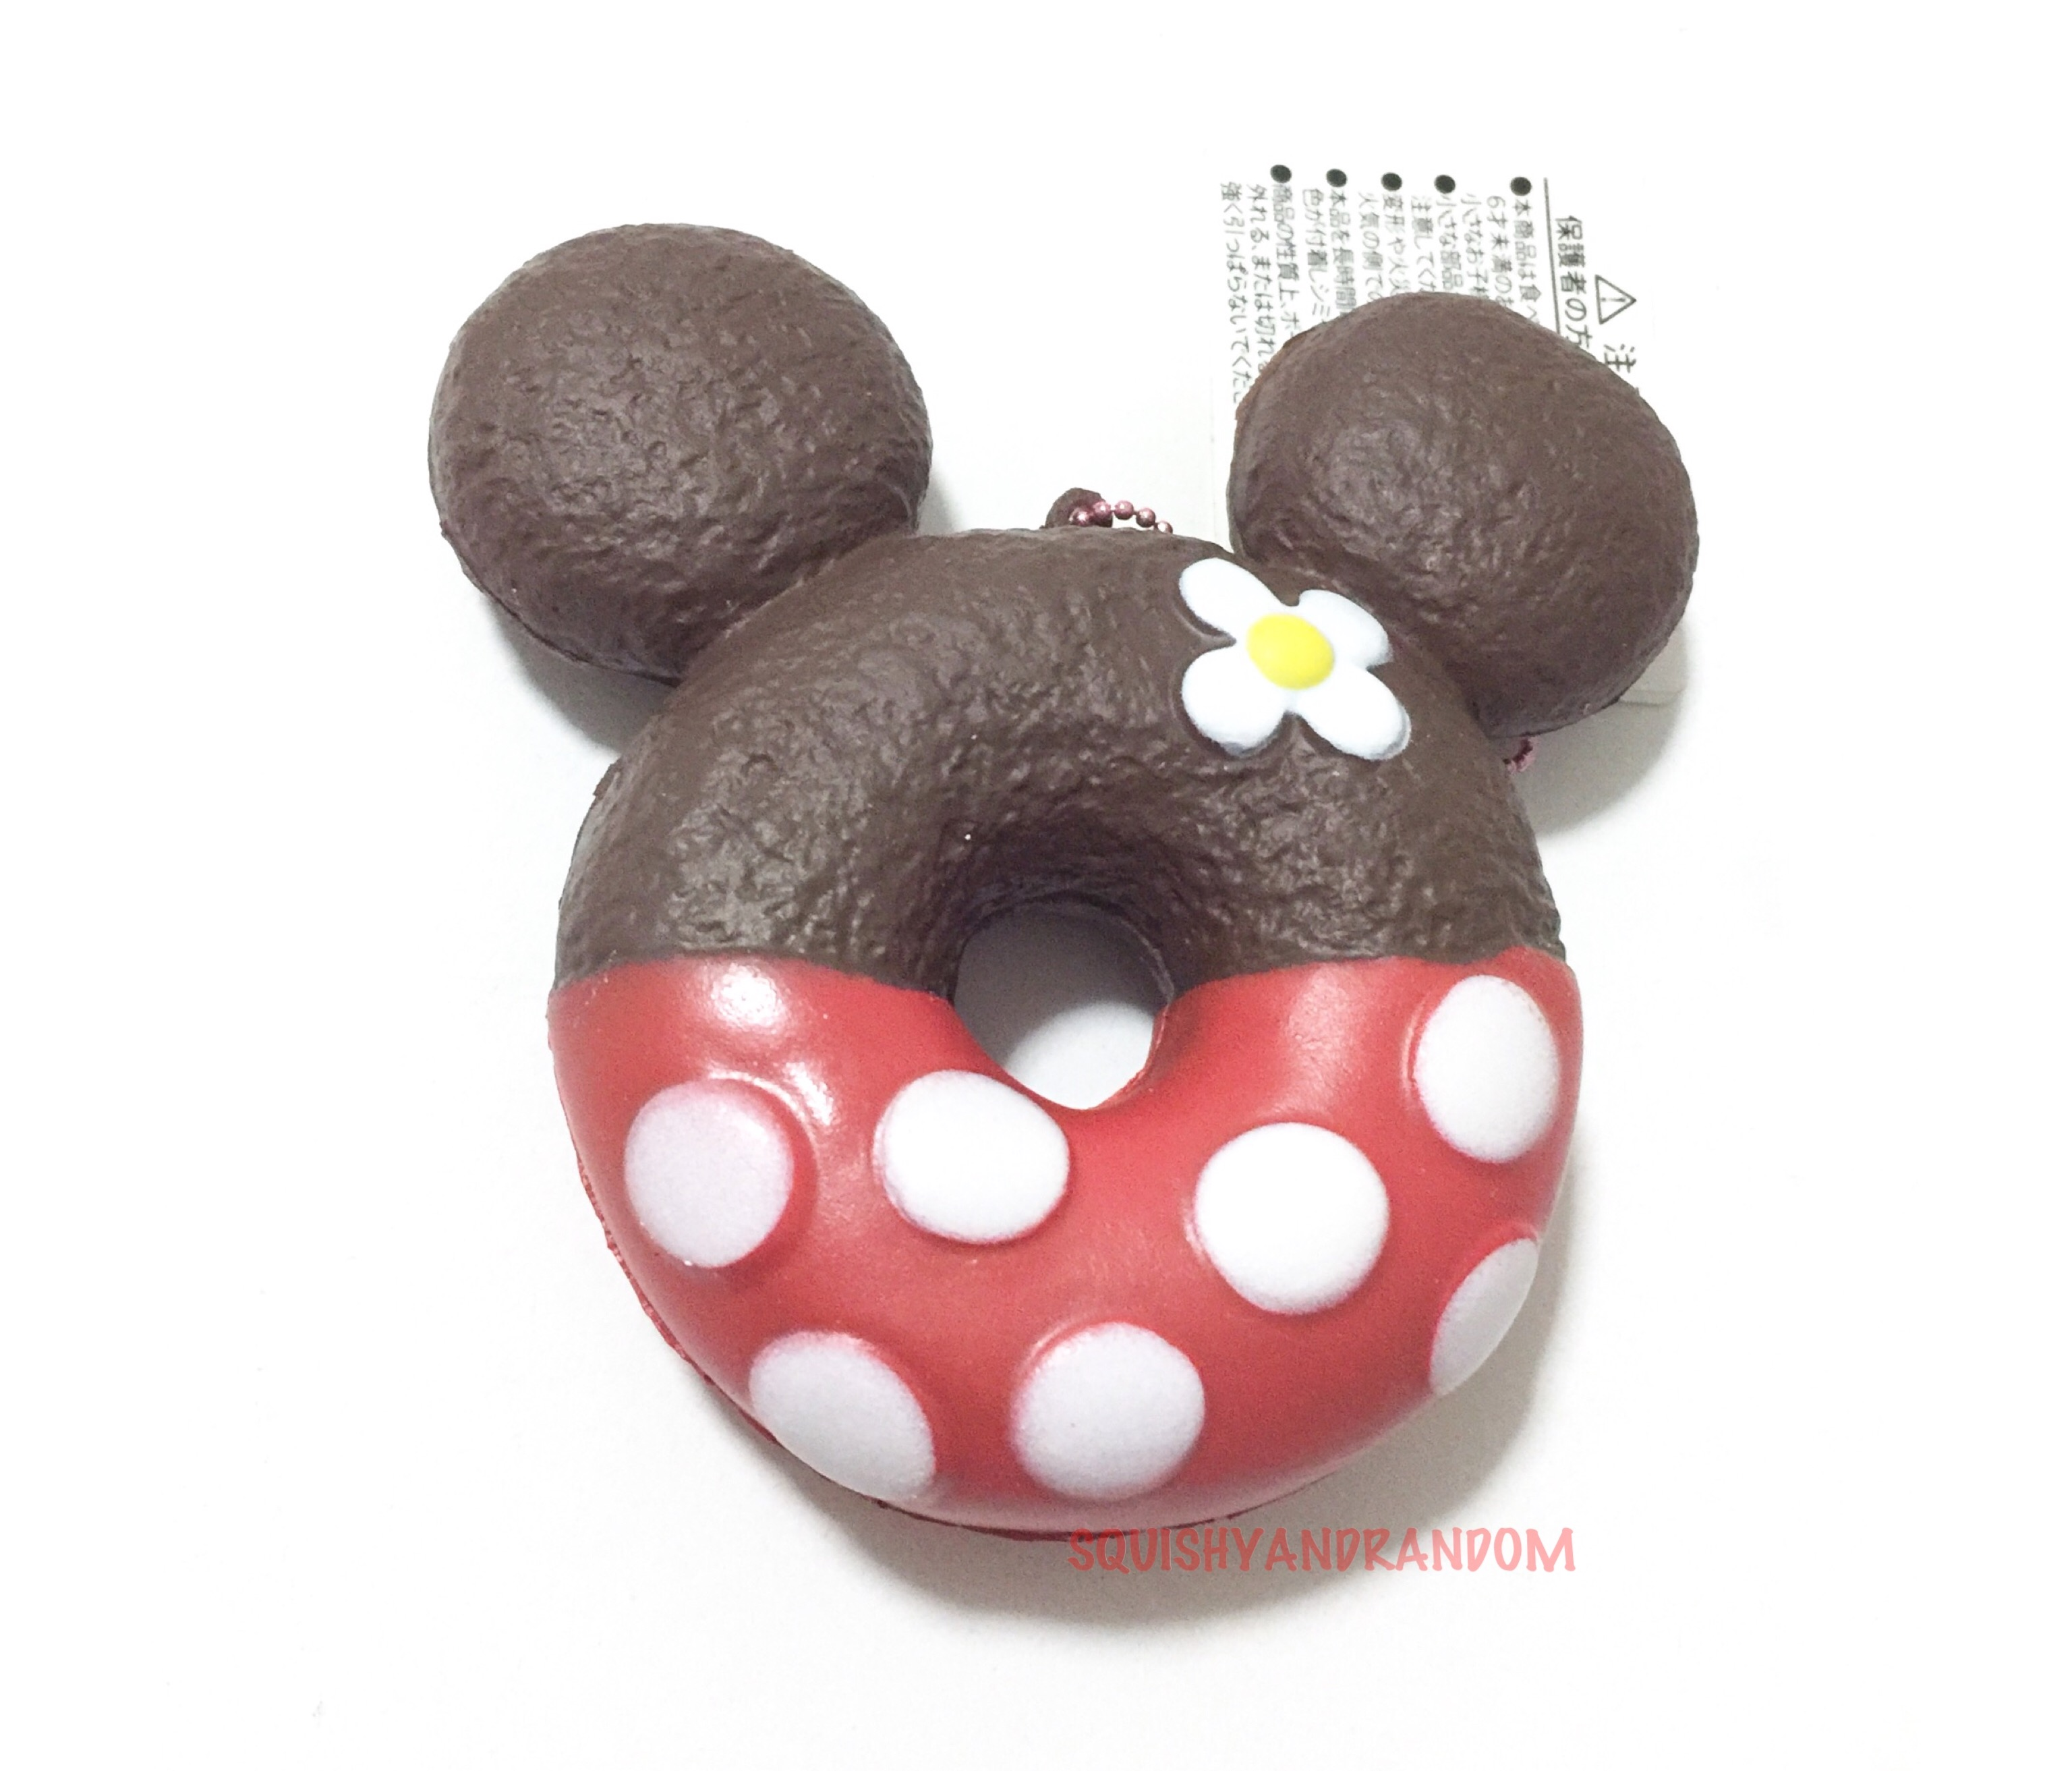 Donut Squishy Collection : Disney Mickey Donut Squishy ? simpleeerandom ? Online Store Powered by Storenvy